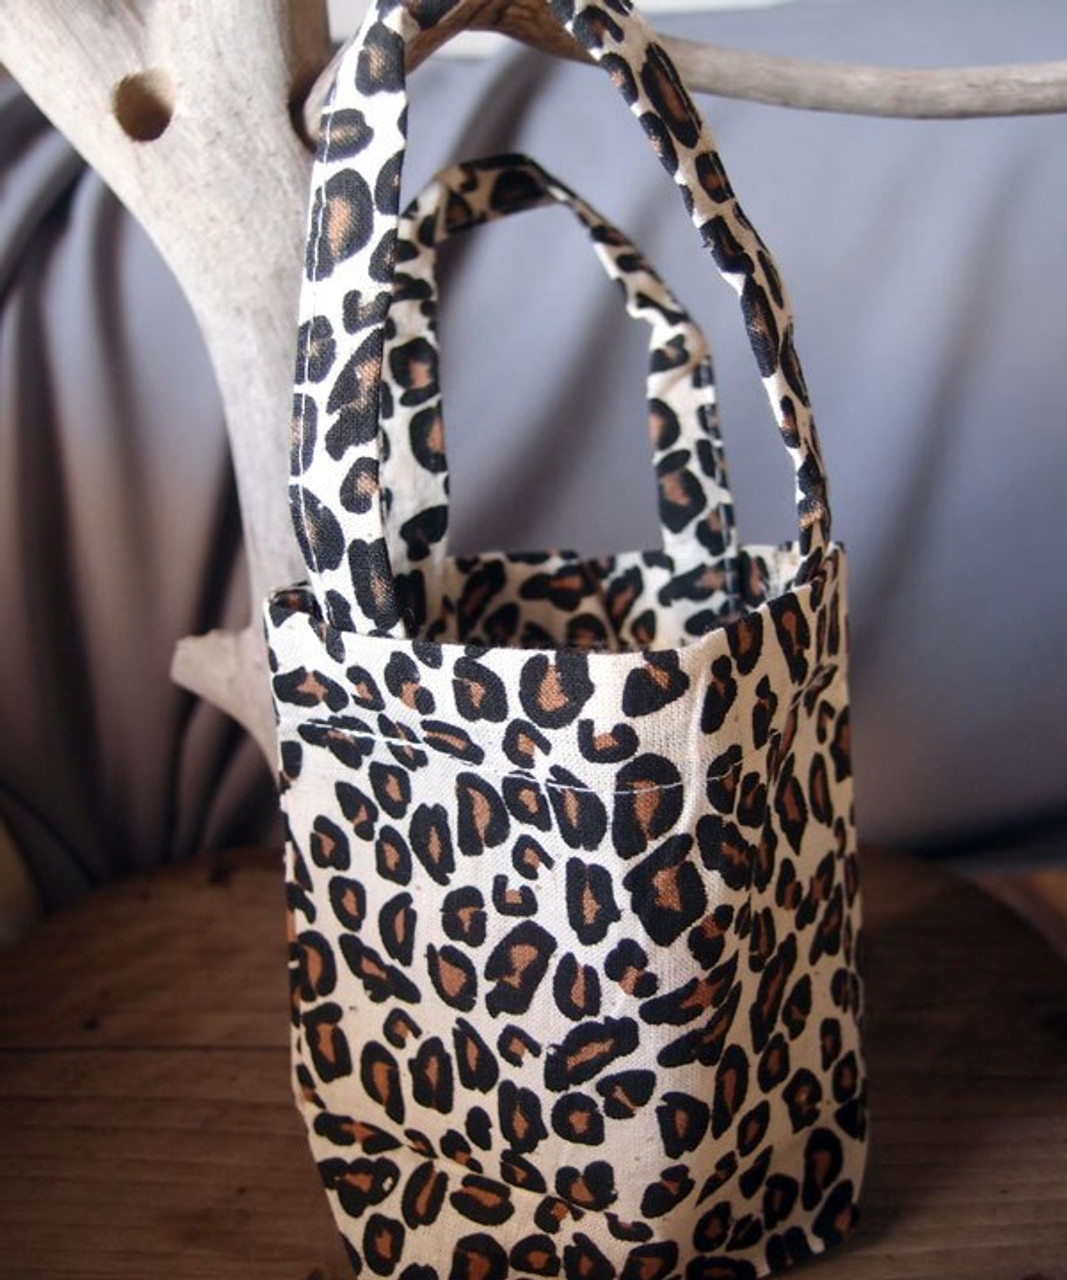 Wholesale Cotton Leopard Print Bags, 5 x 5 x 2 inches. Shop for wholesale cotton tote bags at Packaging Decor! Call (949) 833-7738.